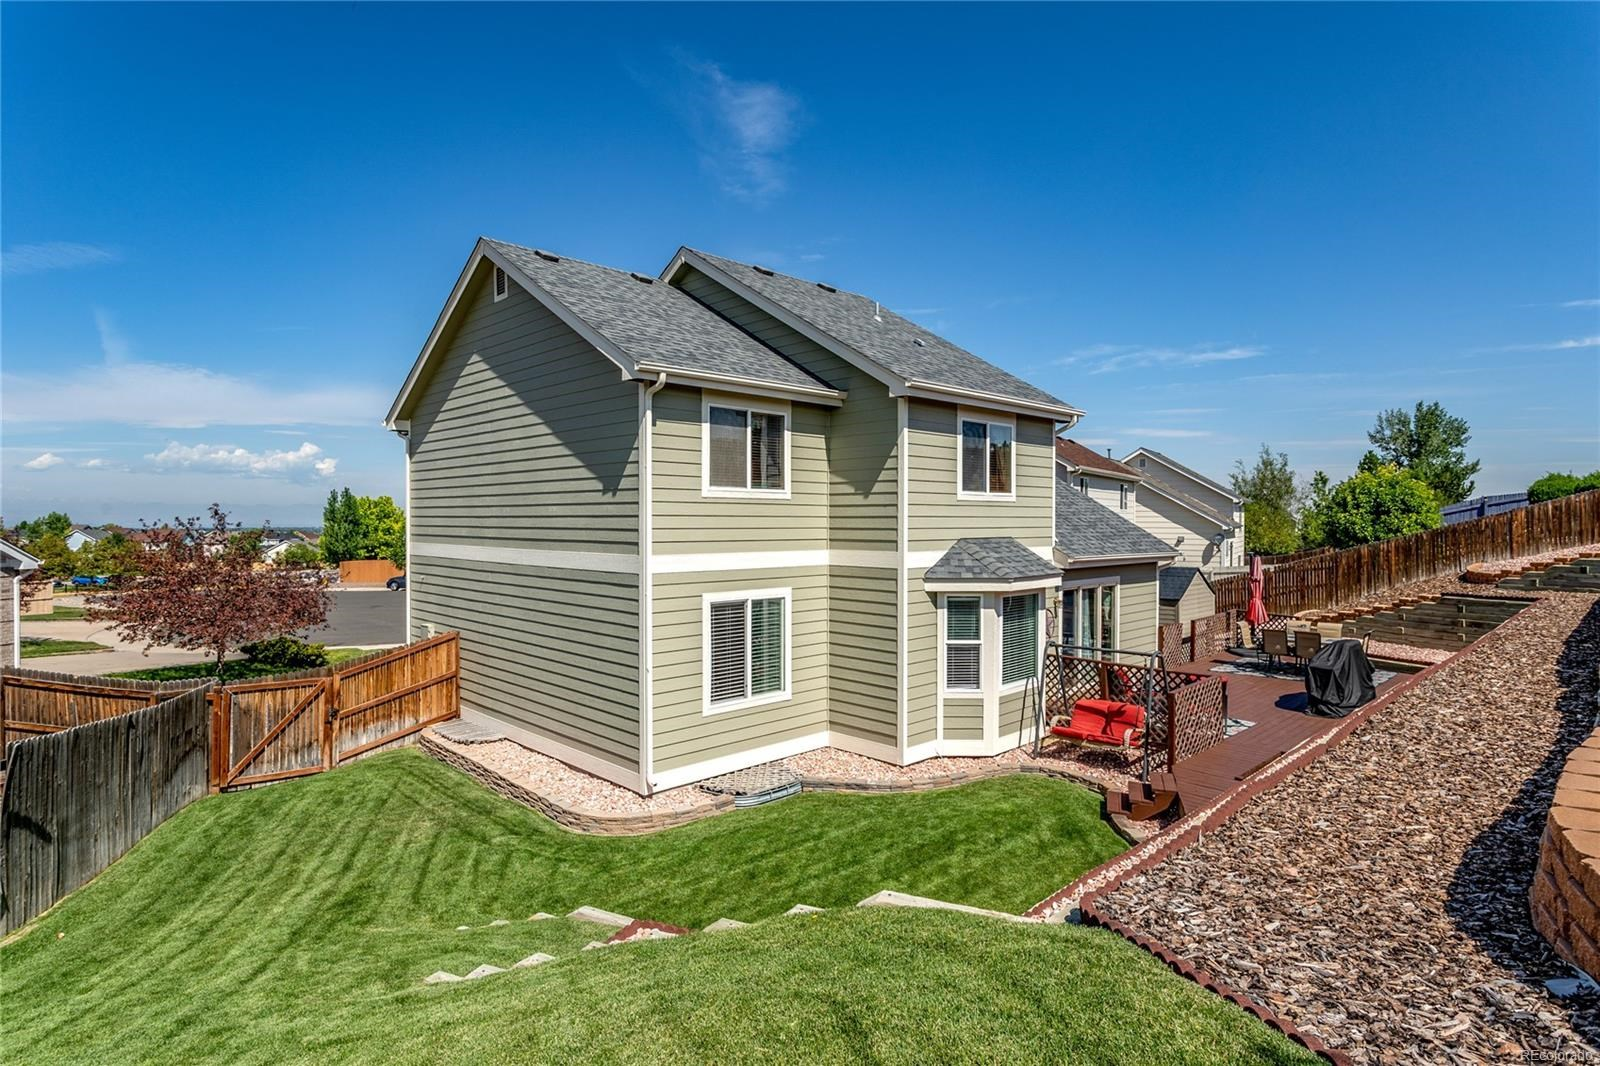 MLS# 3396693 - 26 - 6084 S Zante Way, Aurora, CO 80015